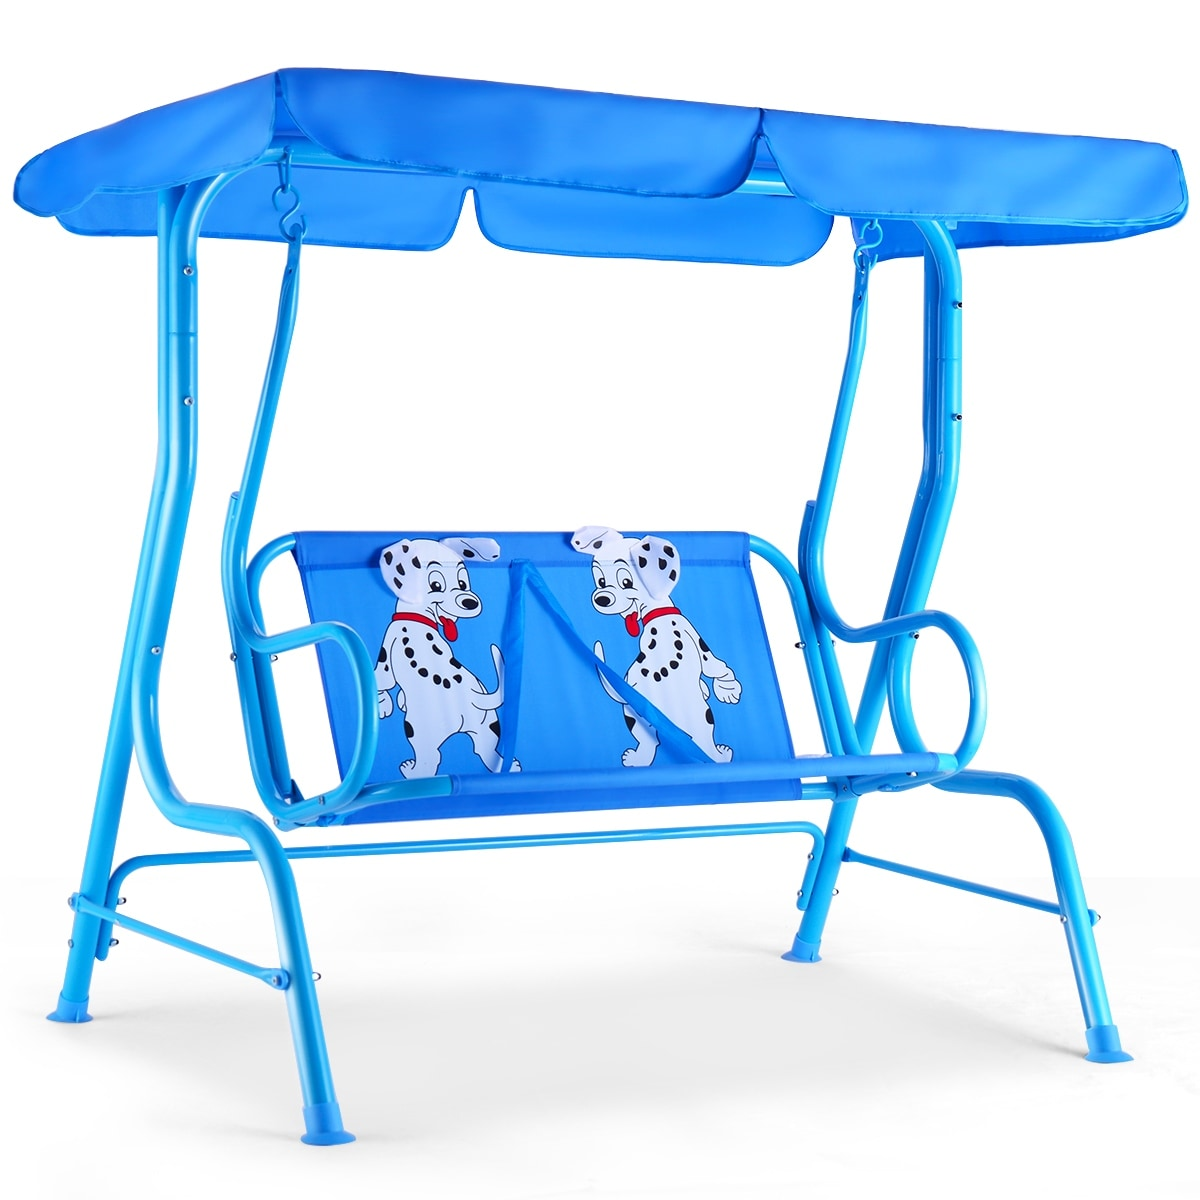 Kids Patio Furniture.Costway Kids Patio Swing Chair Children Porch Bench Canopy 2 Person Yard Furniture Blue